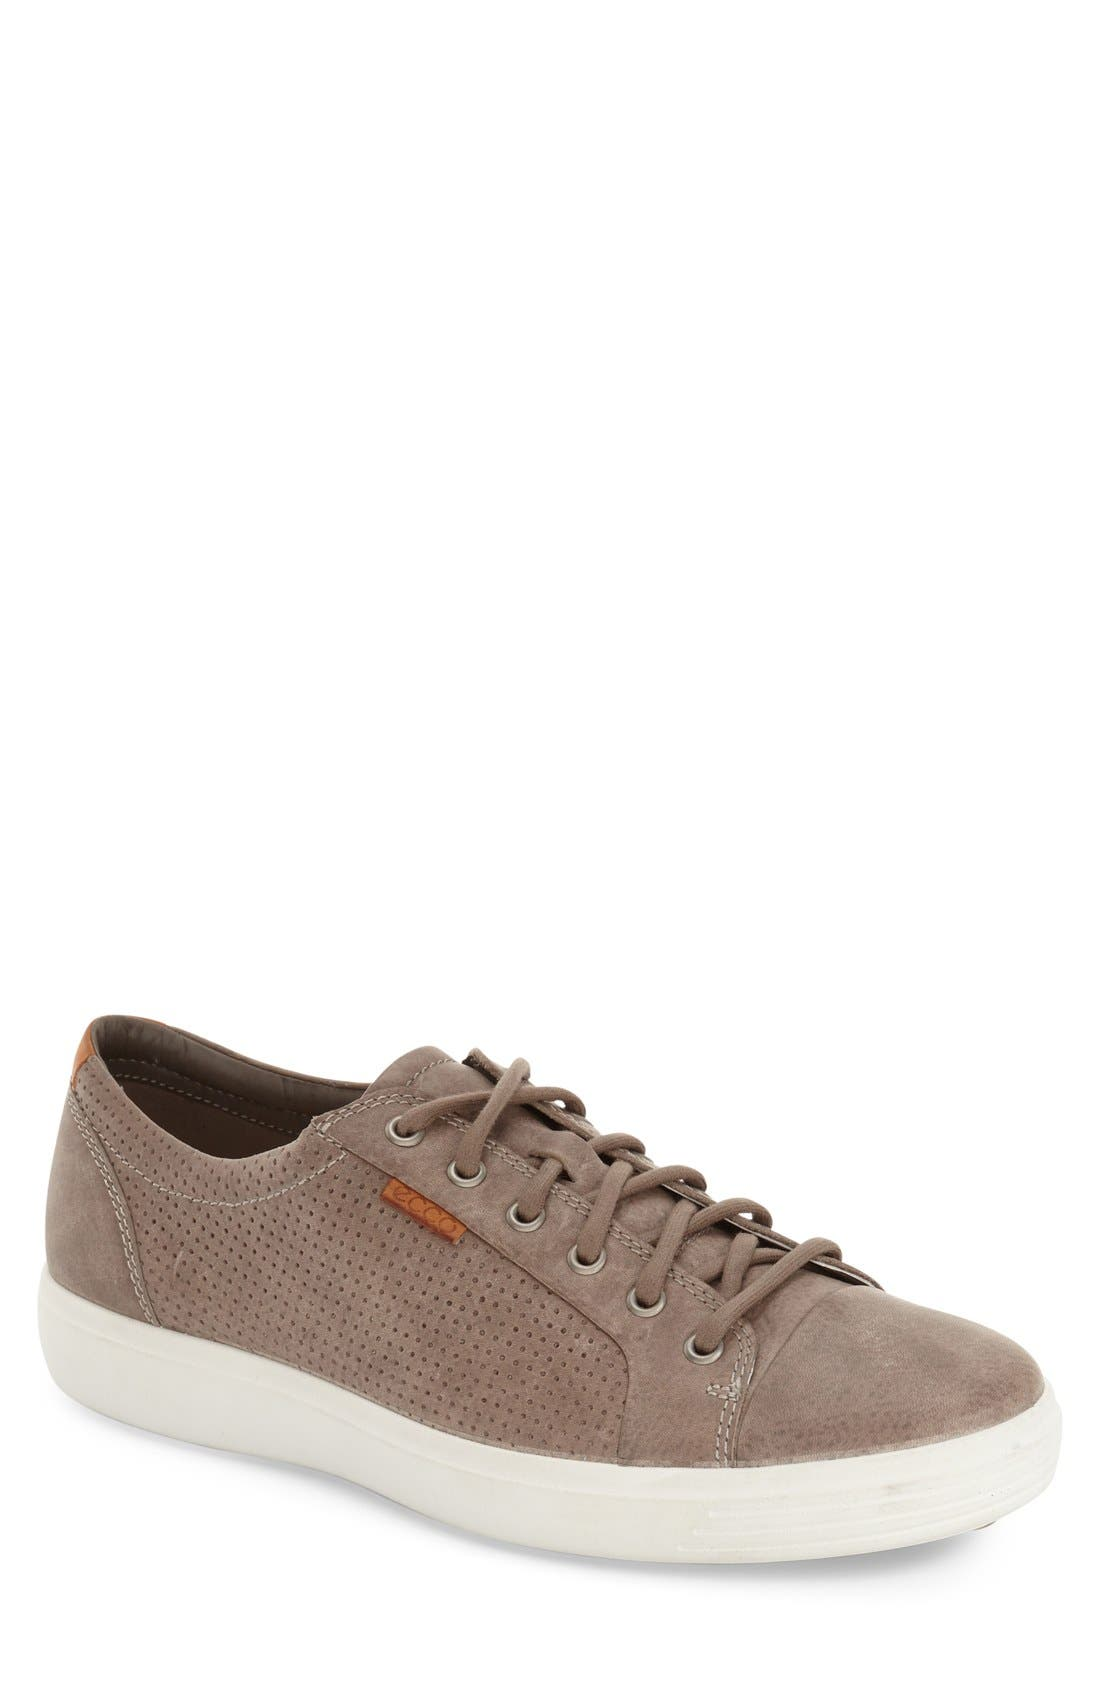 'Soft 7' Sneaker,                             Main thumbnail 1, color,                             MOON ROCK LEATHER